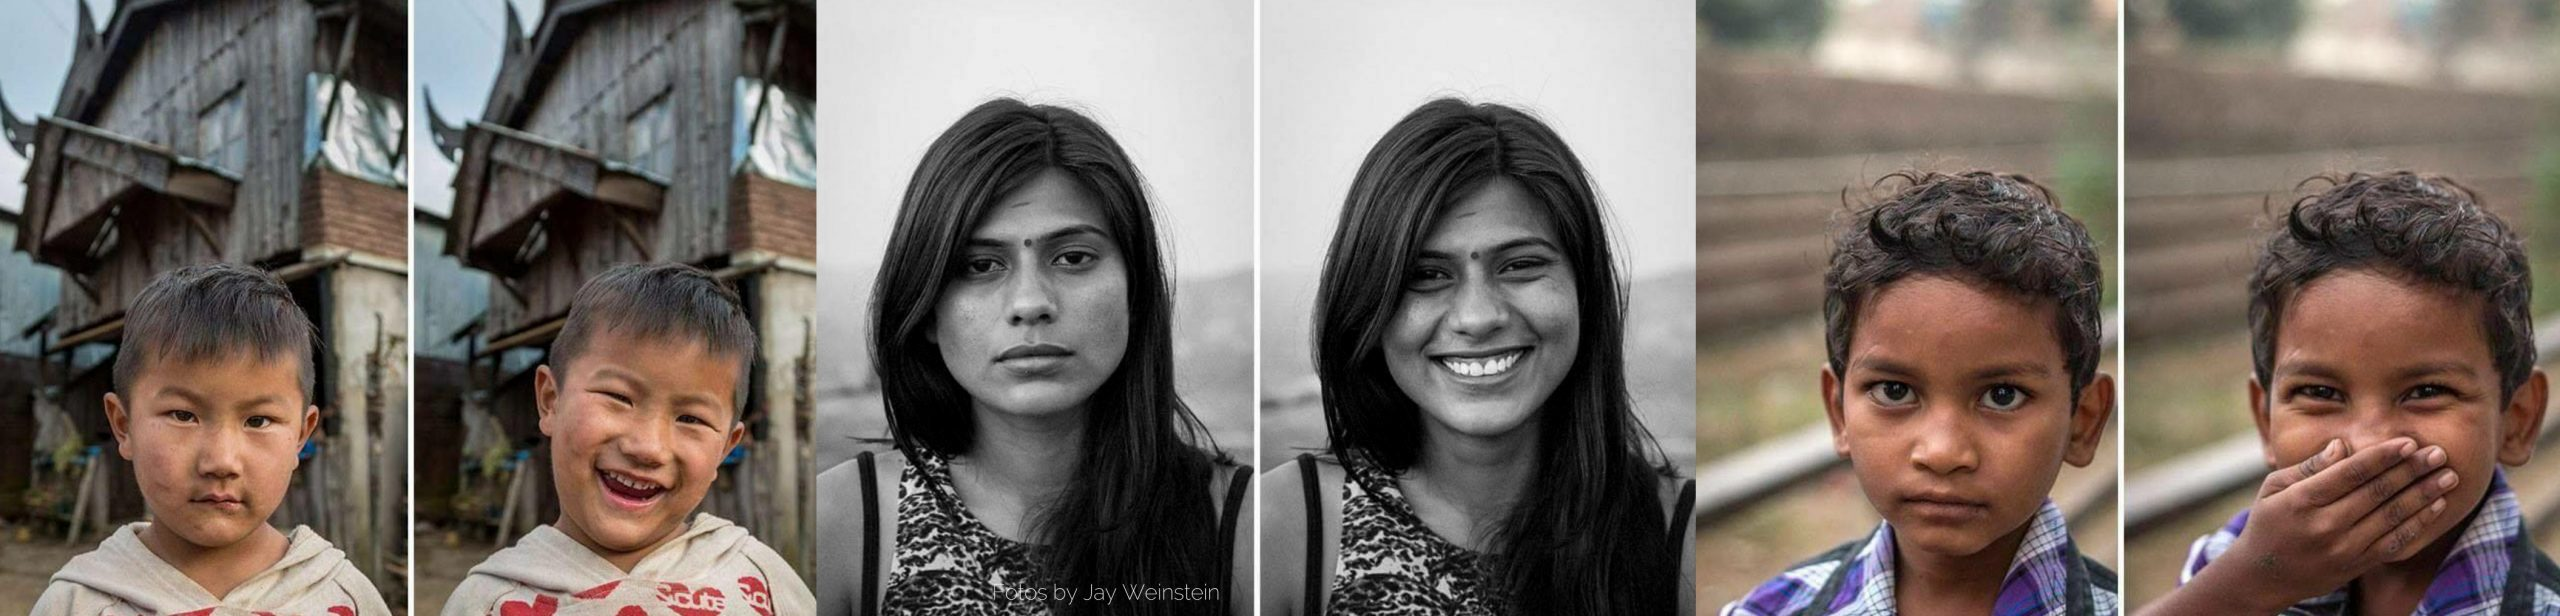 Jay Weinstein | I asked them to smile